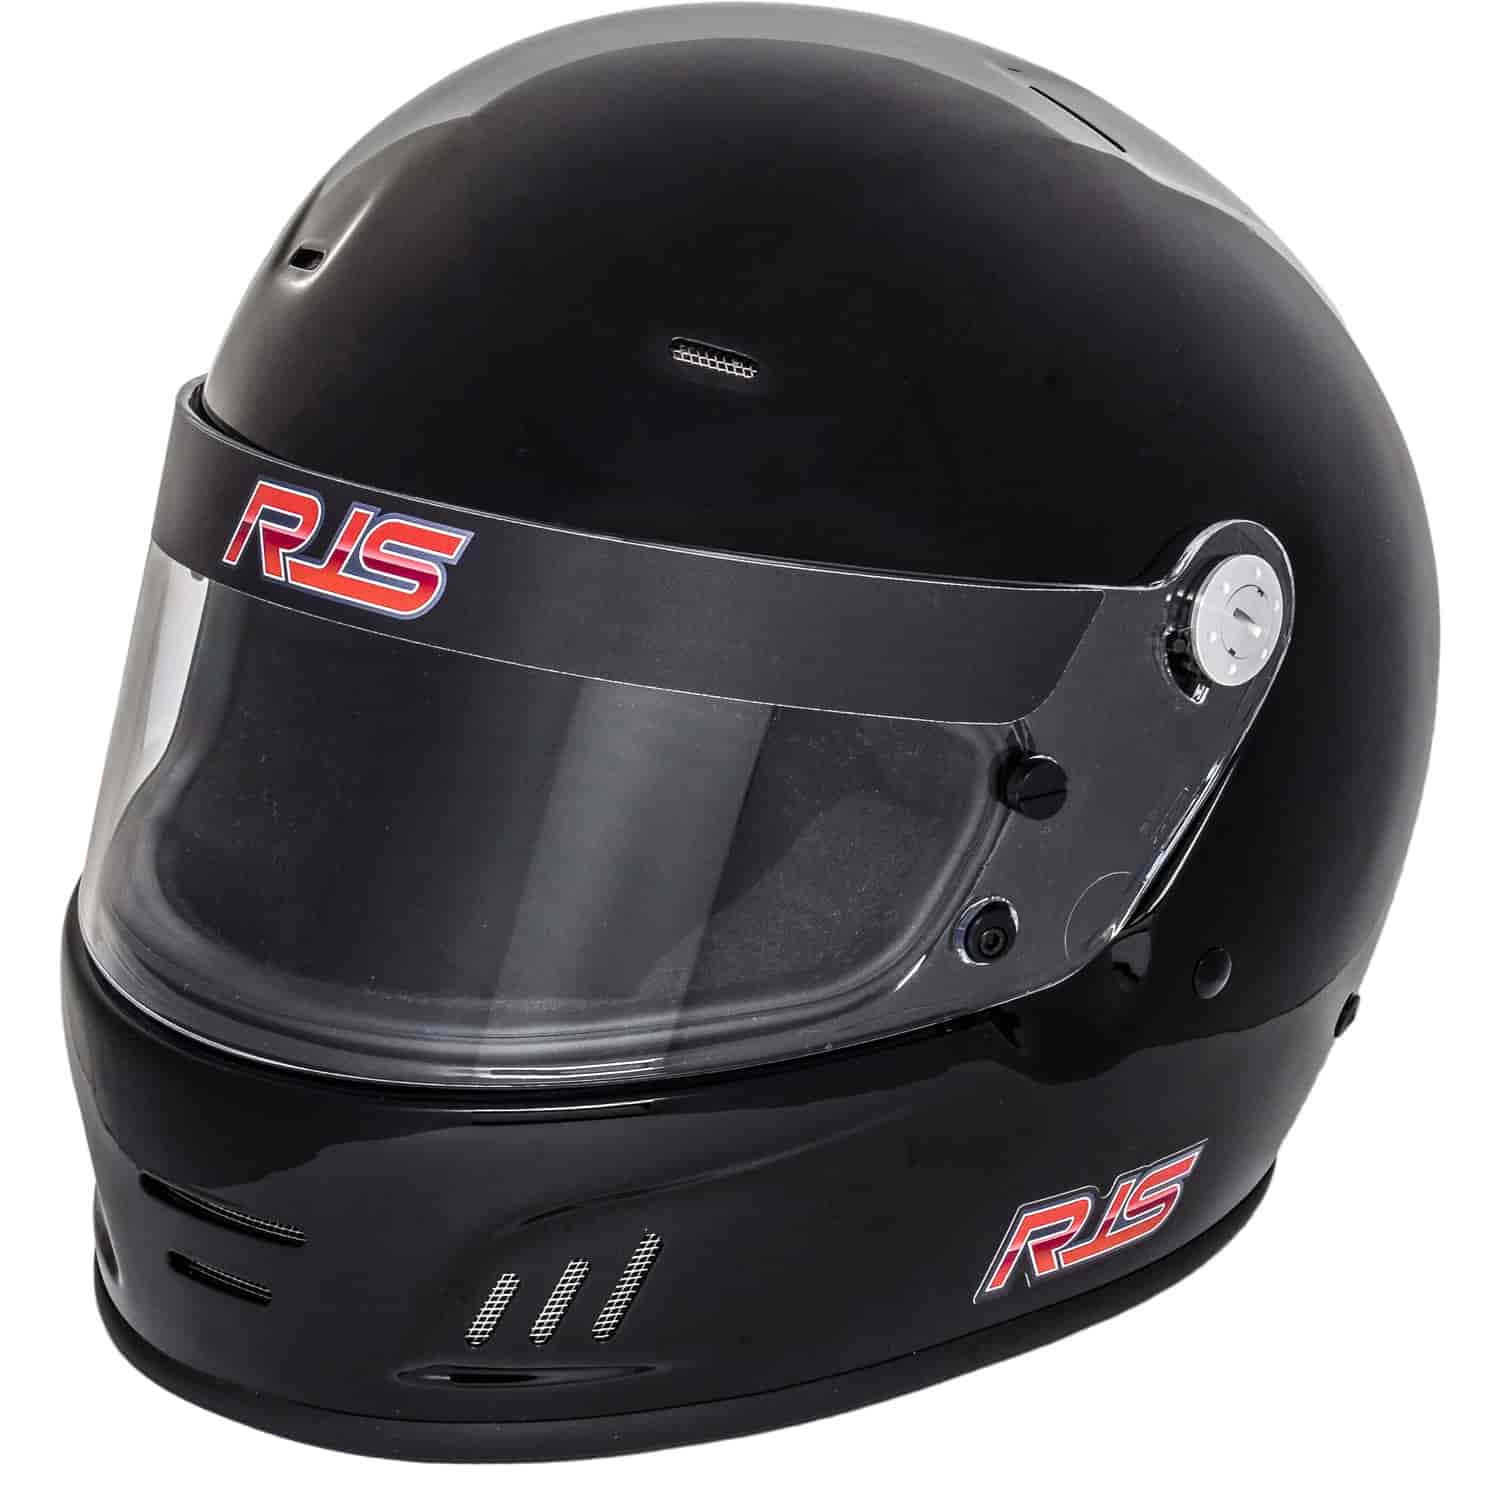 RJS Racing Equipment PROMDGB